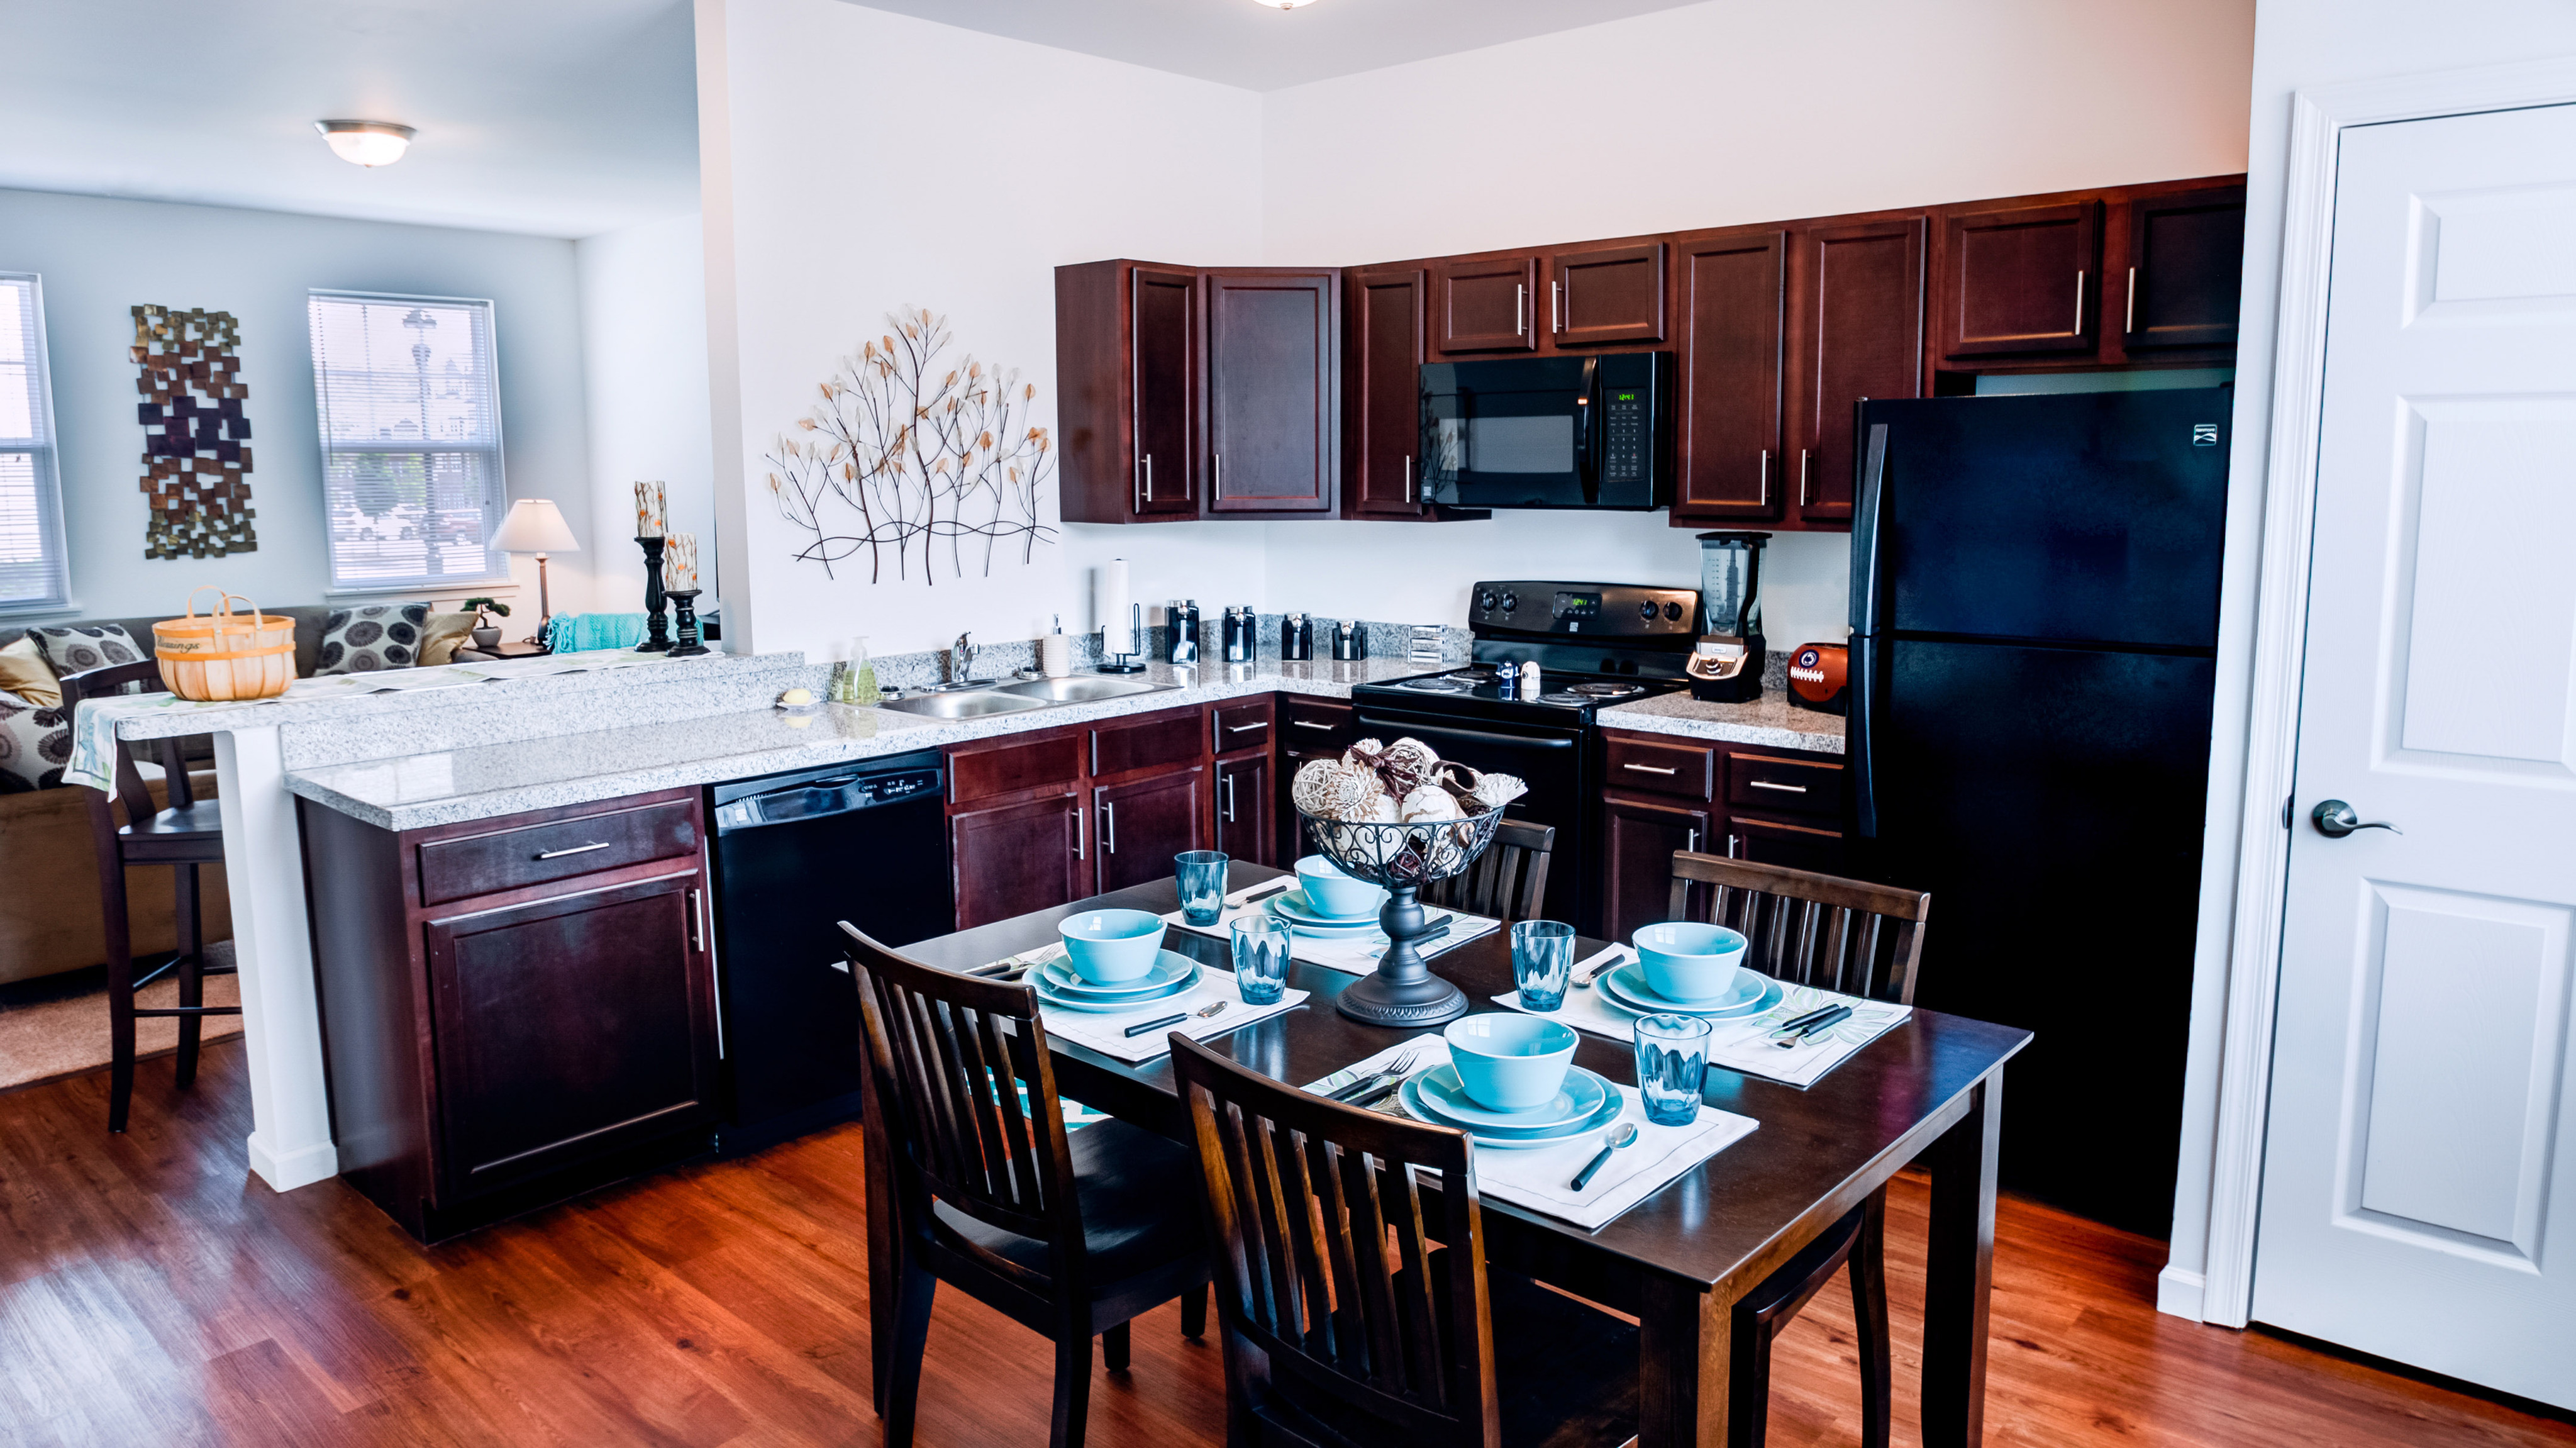 Luxury off-campus living for Penn State in State College, Pennsylvania